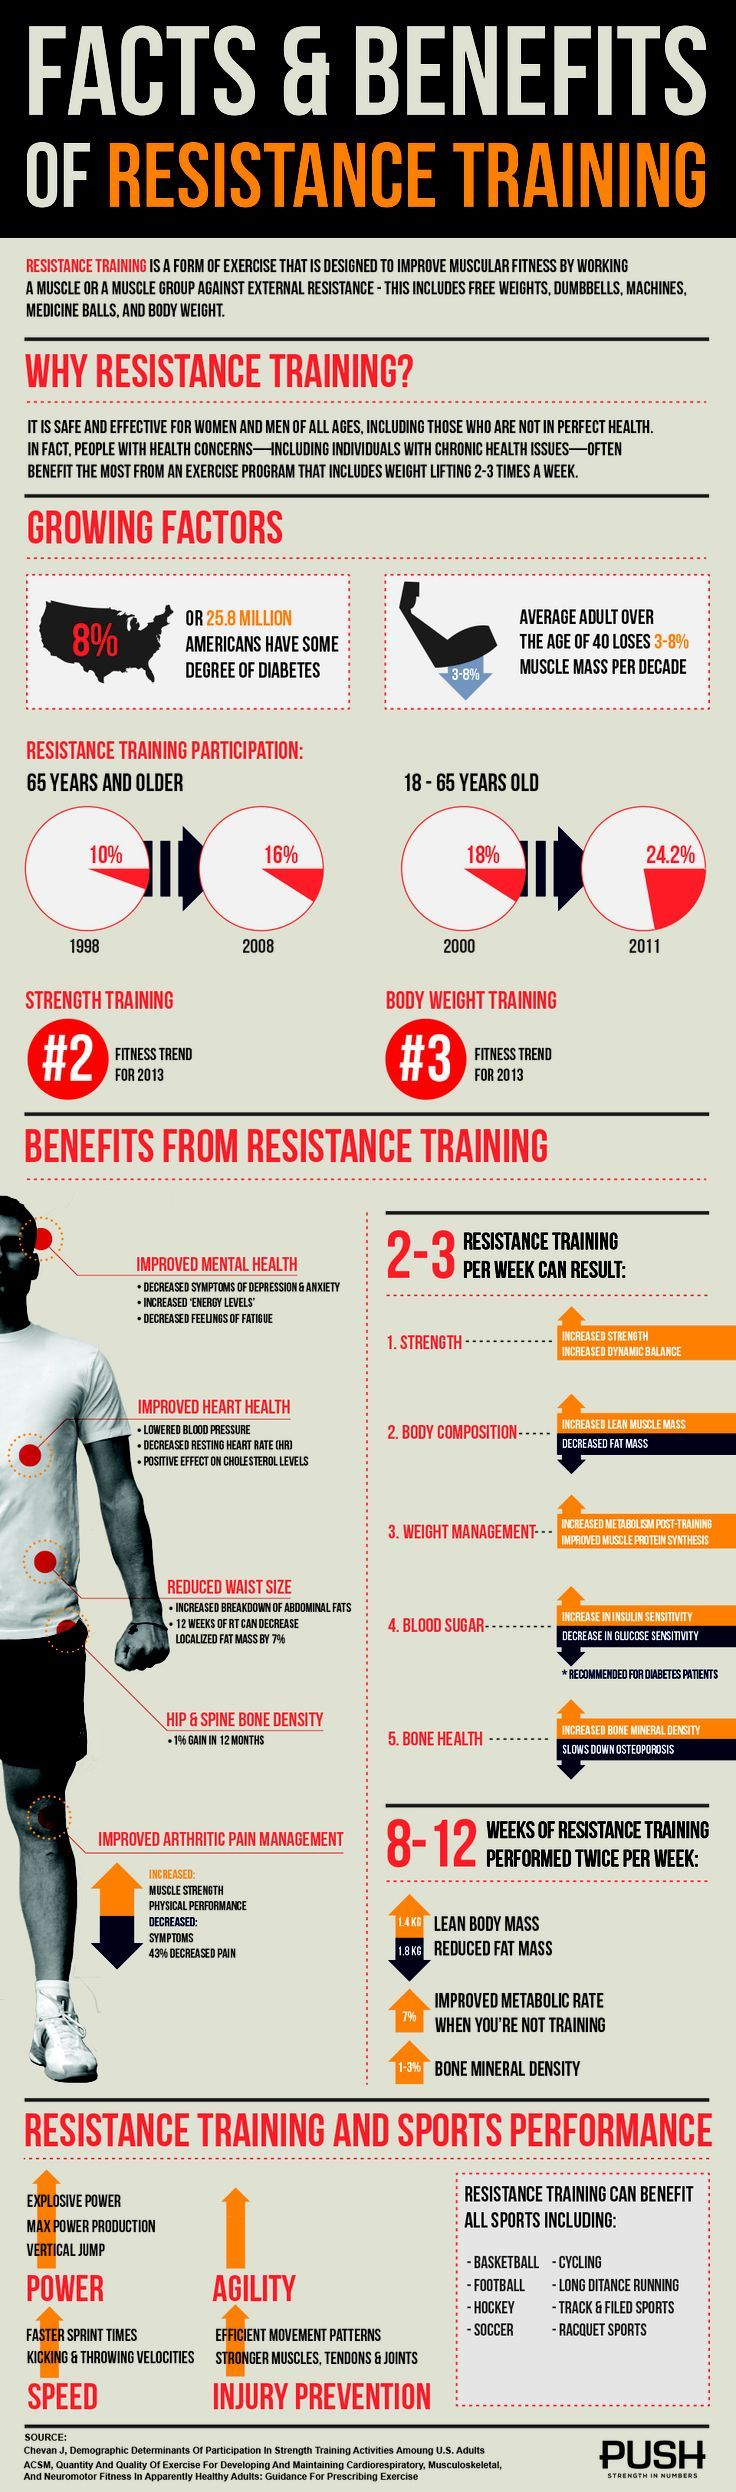 What are some benefits of strength training?